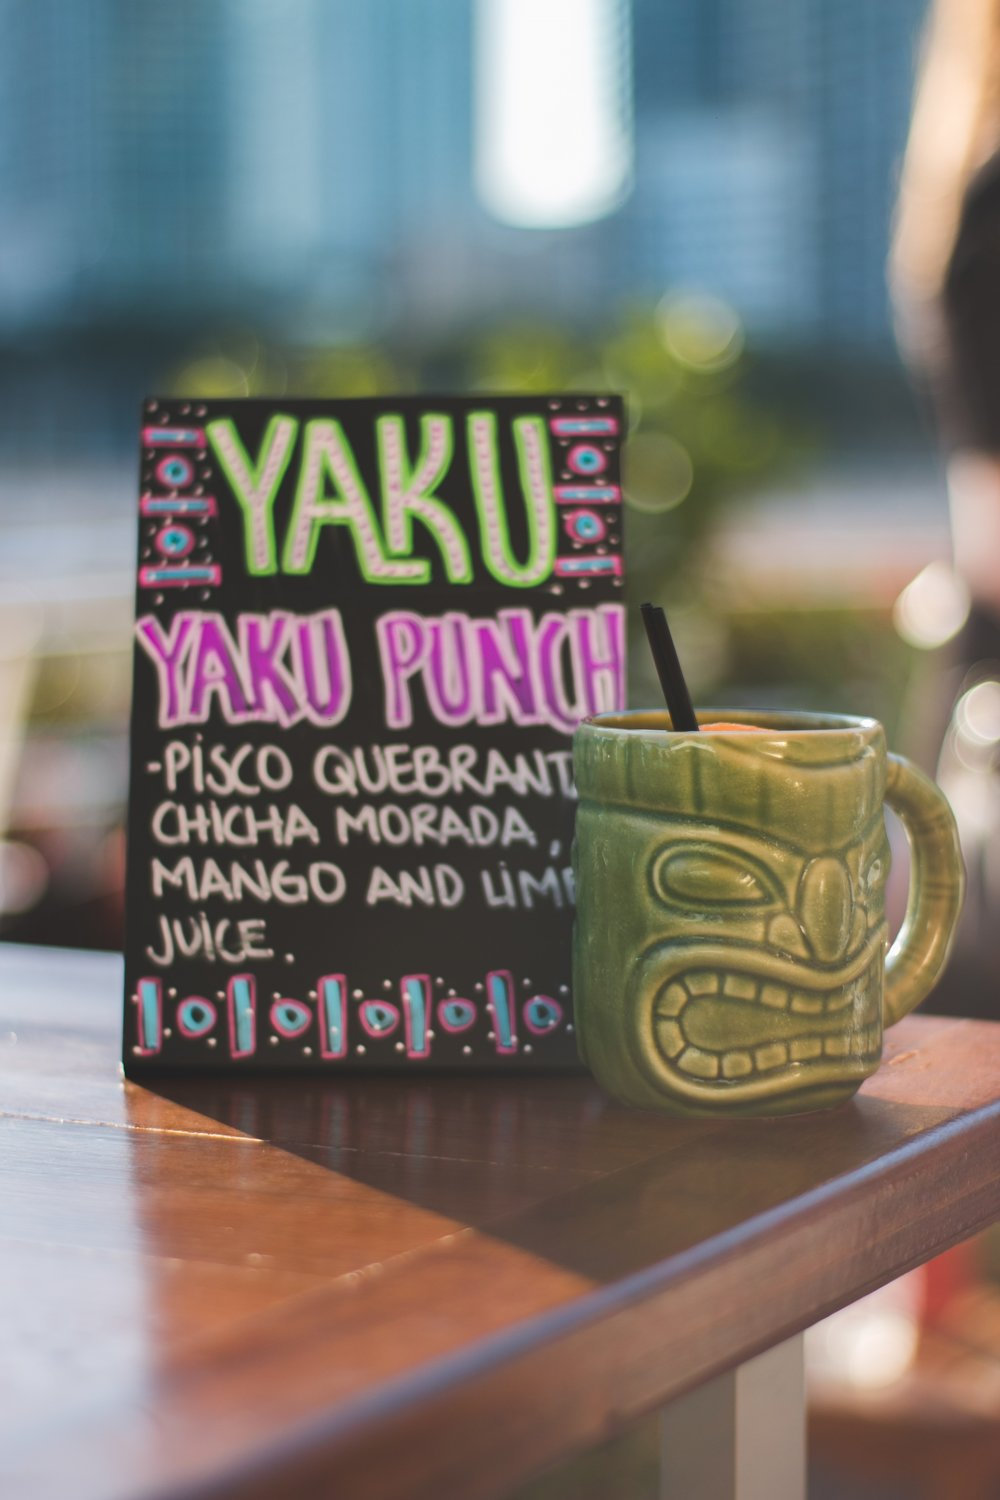 yaku cocktail.jpg